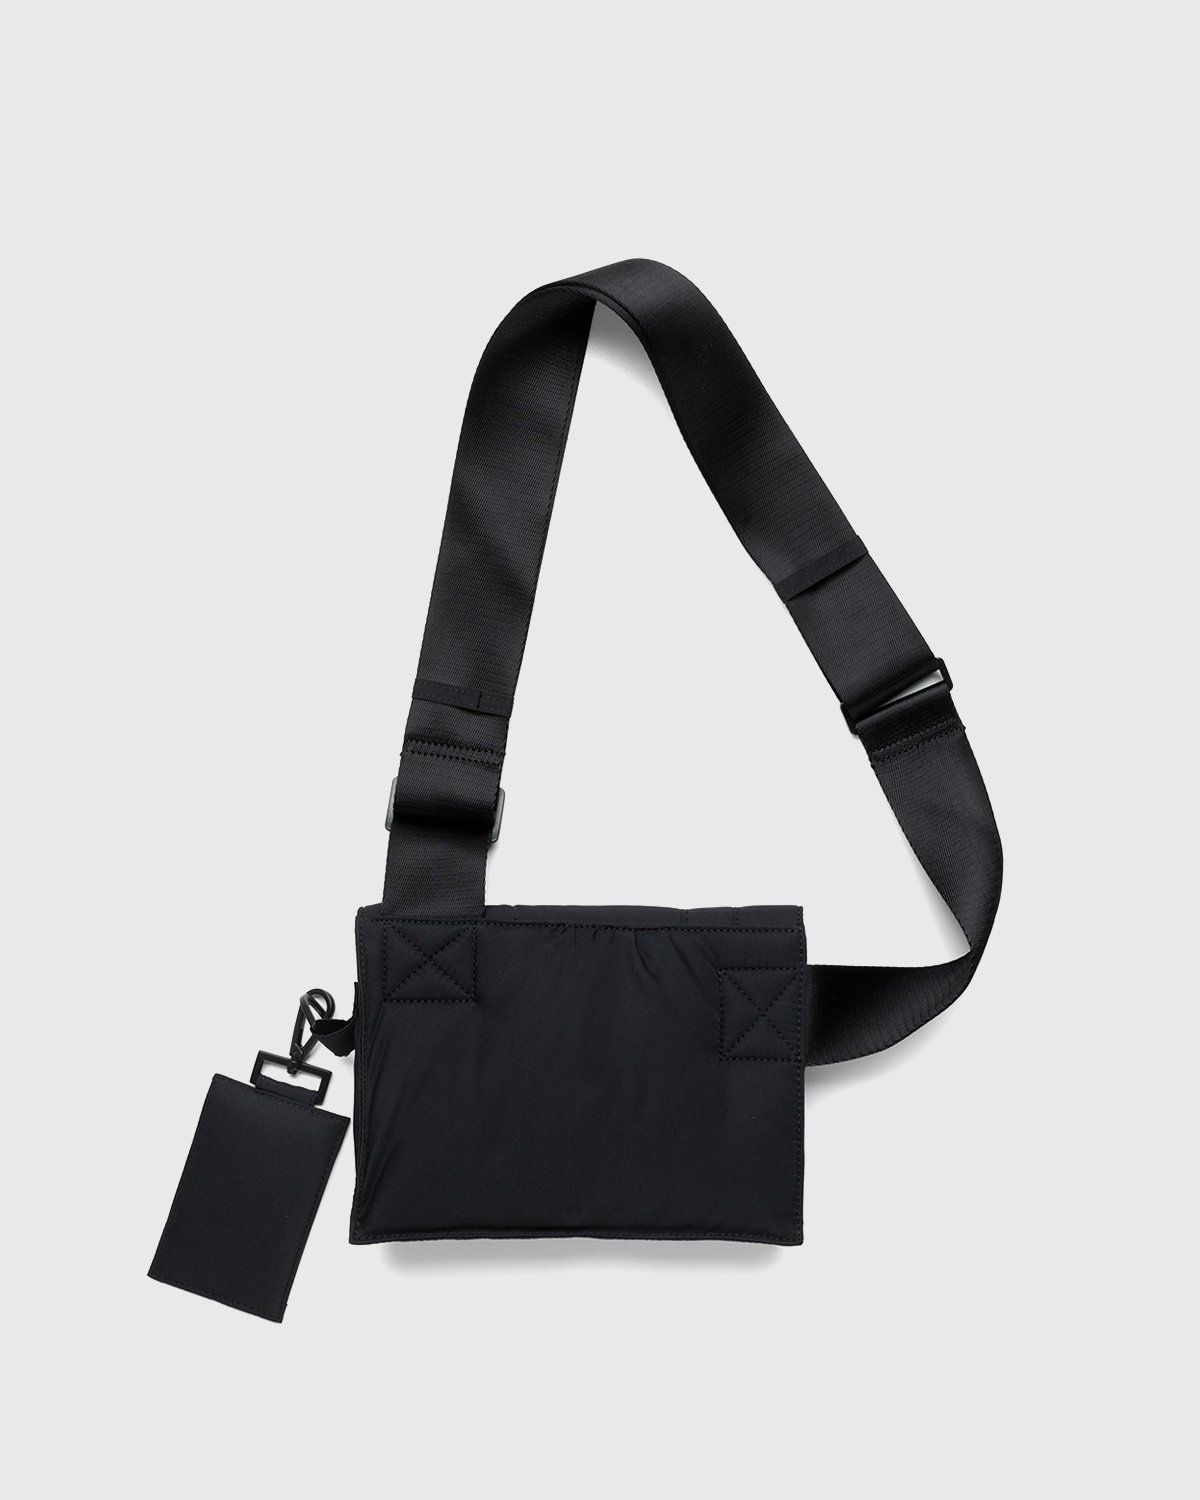 A-COLD-WALL* – Convect Holster Bag Black - Image 2